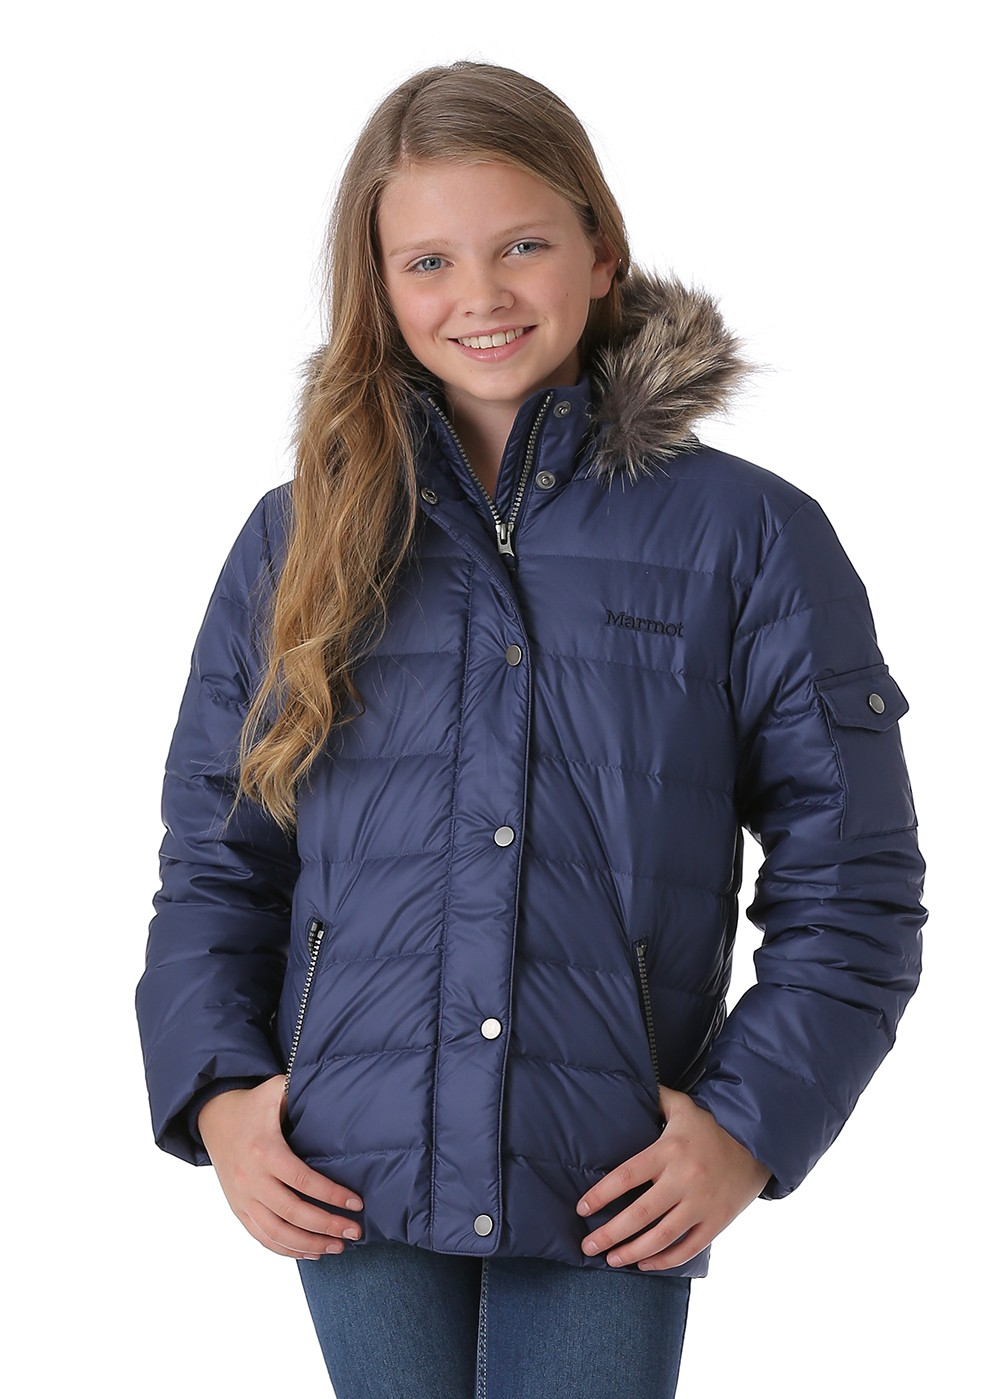 Marmot Girls Hailey Jacket Girls Jackets Kids Jackets